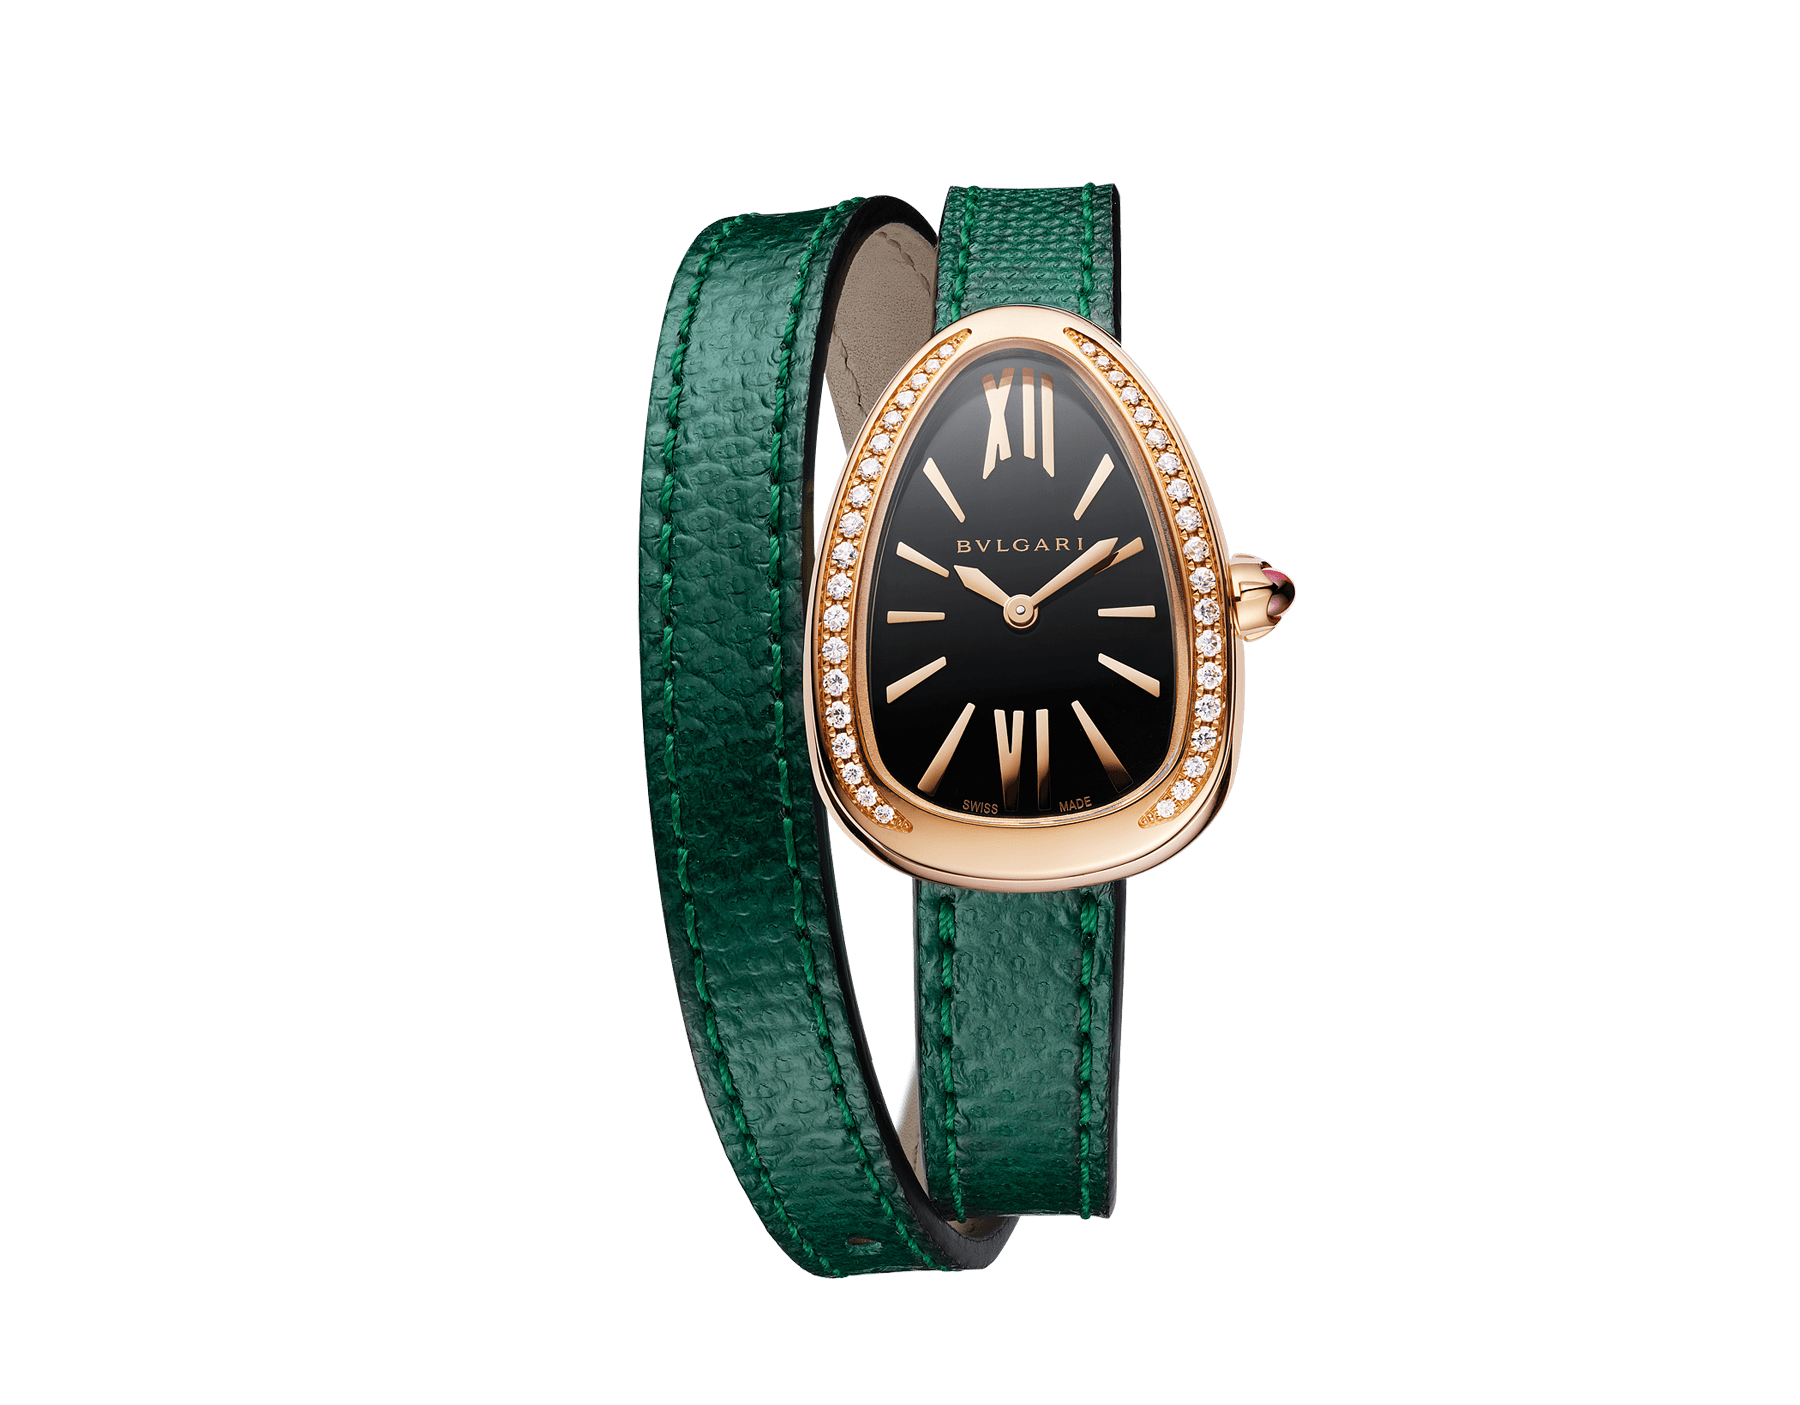 Serpenti watch with 18 kt rose gold case set with round brilliant-cut diamonds, black lacquered dial and interchangeable double spiral bracelet in green karung leather 102918 image 1